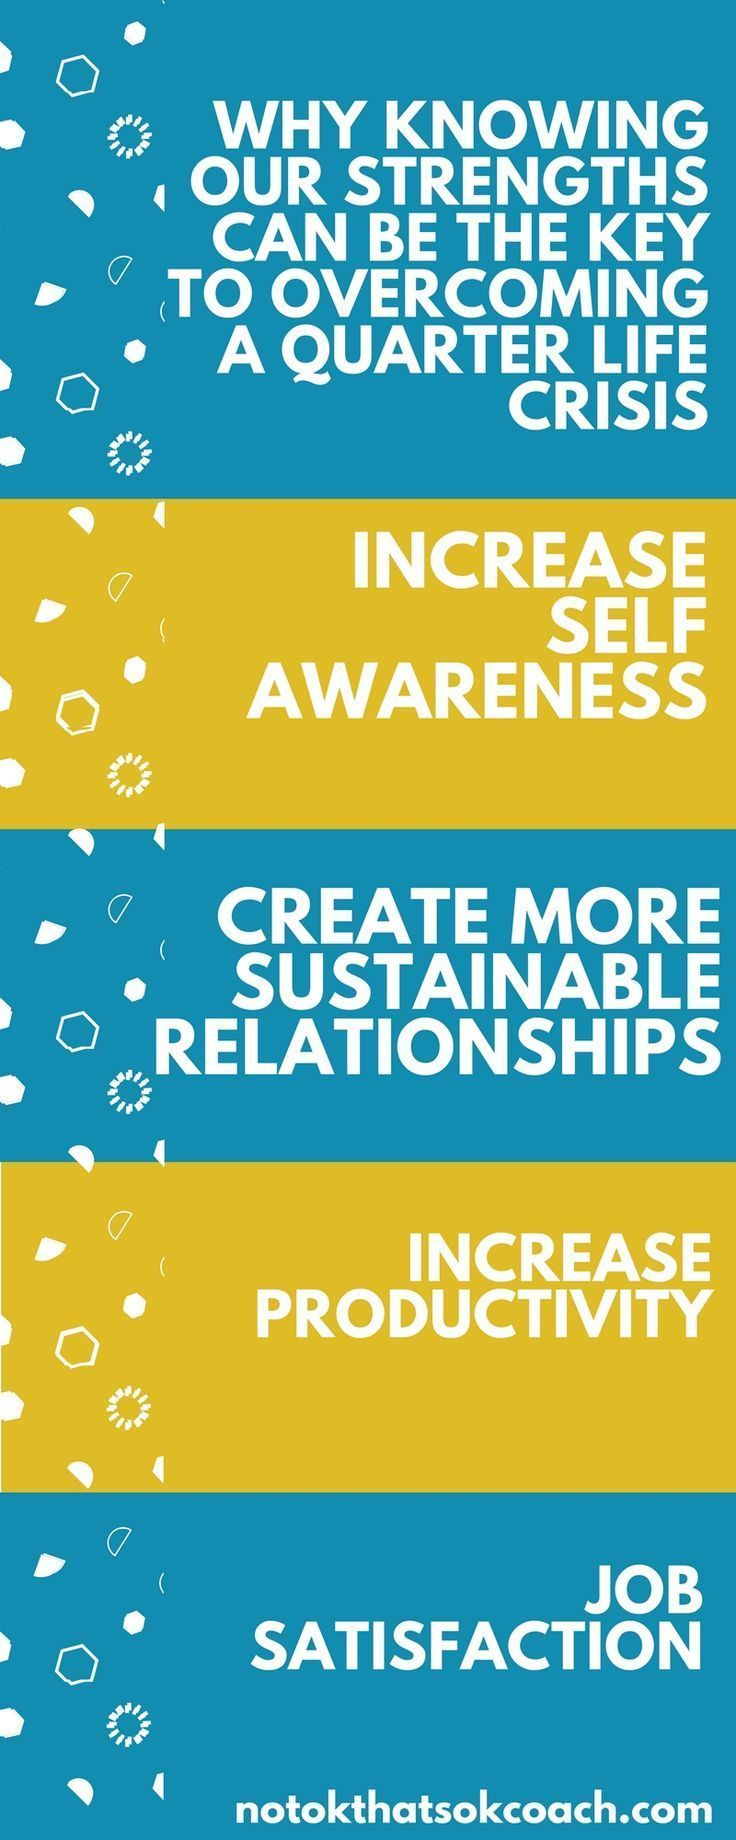 Psychology-Infographic-Are-you-going-through-a-quarter-life-crisis-and-struggling-to-accomplish-your-go Psychology Infographic : Are you going through a quarter life crisis and struggling to accomplish your go...